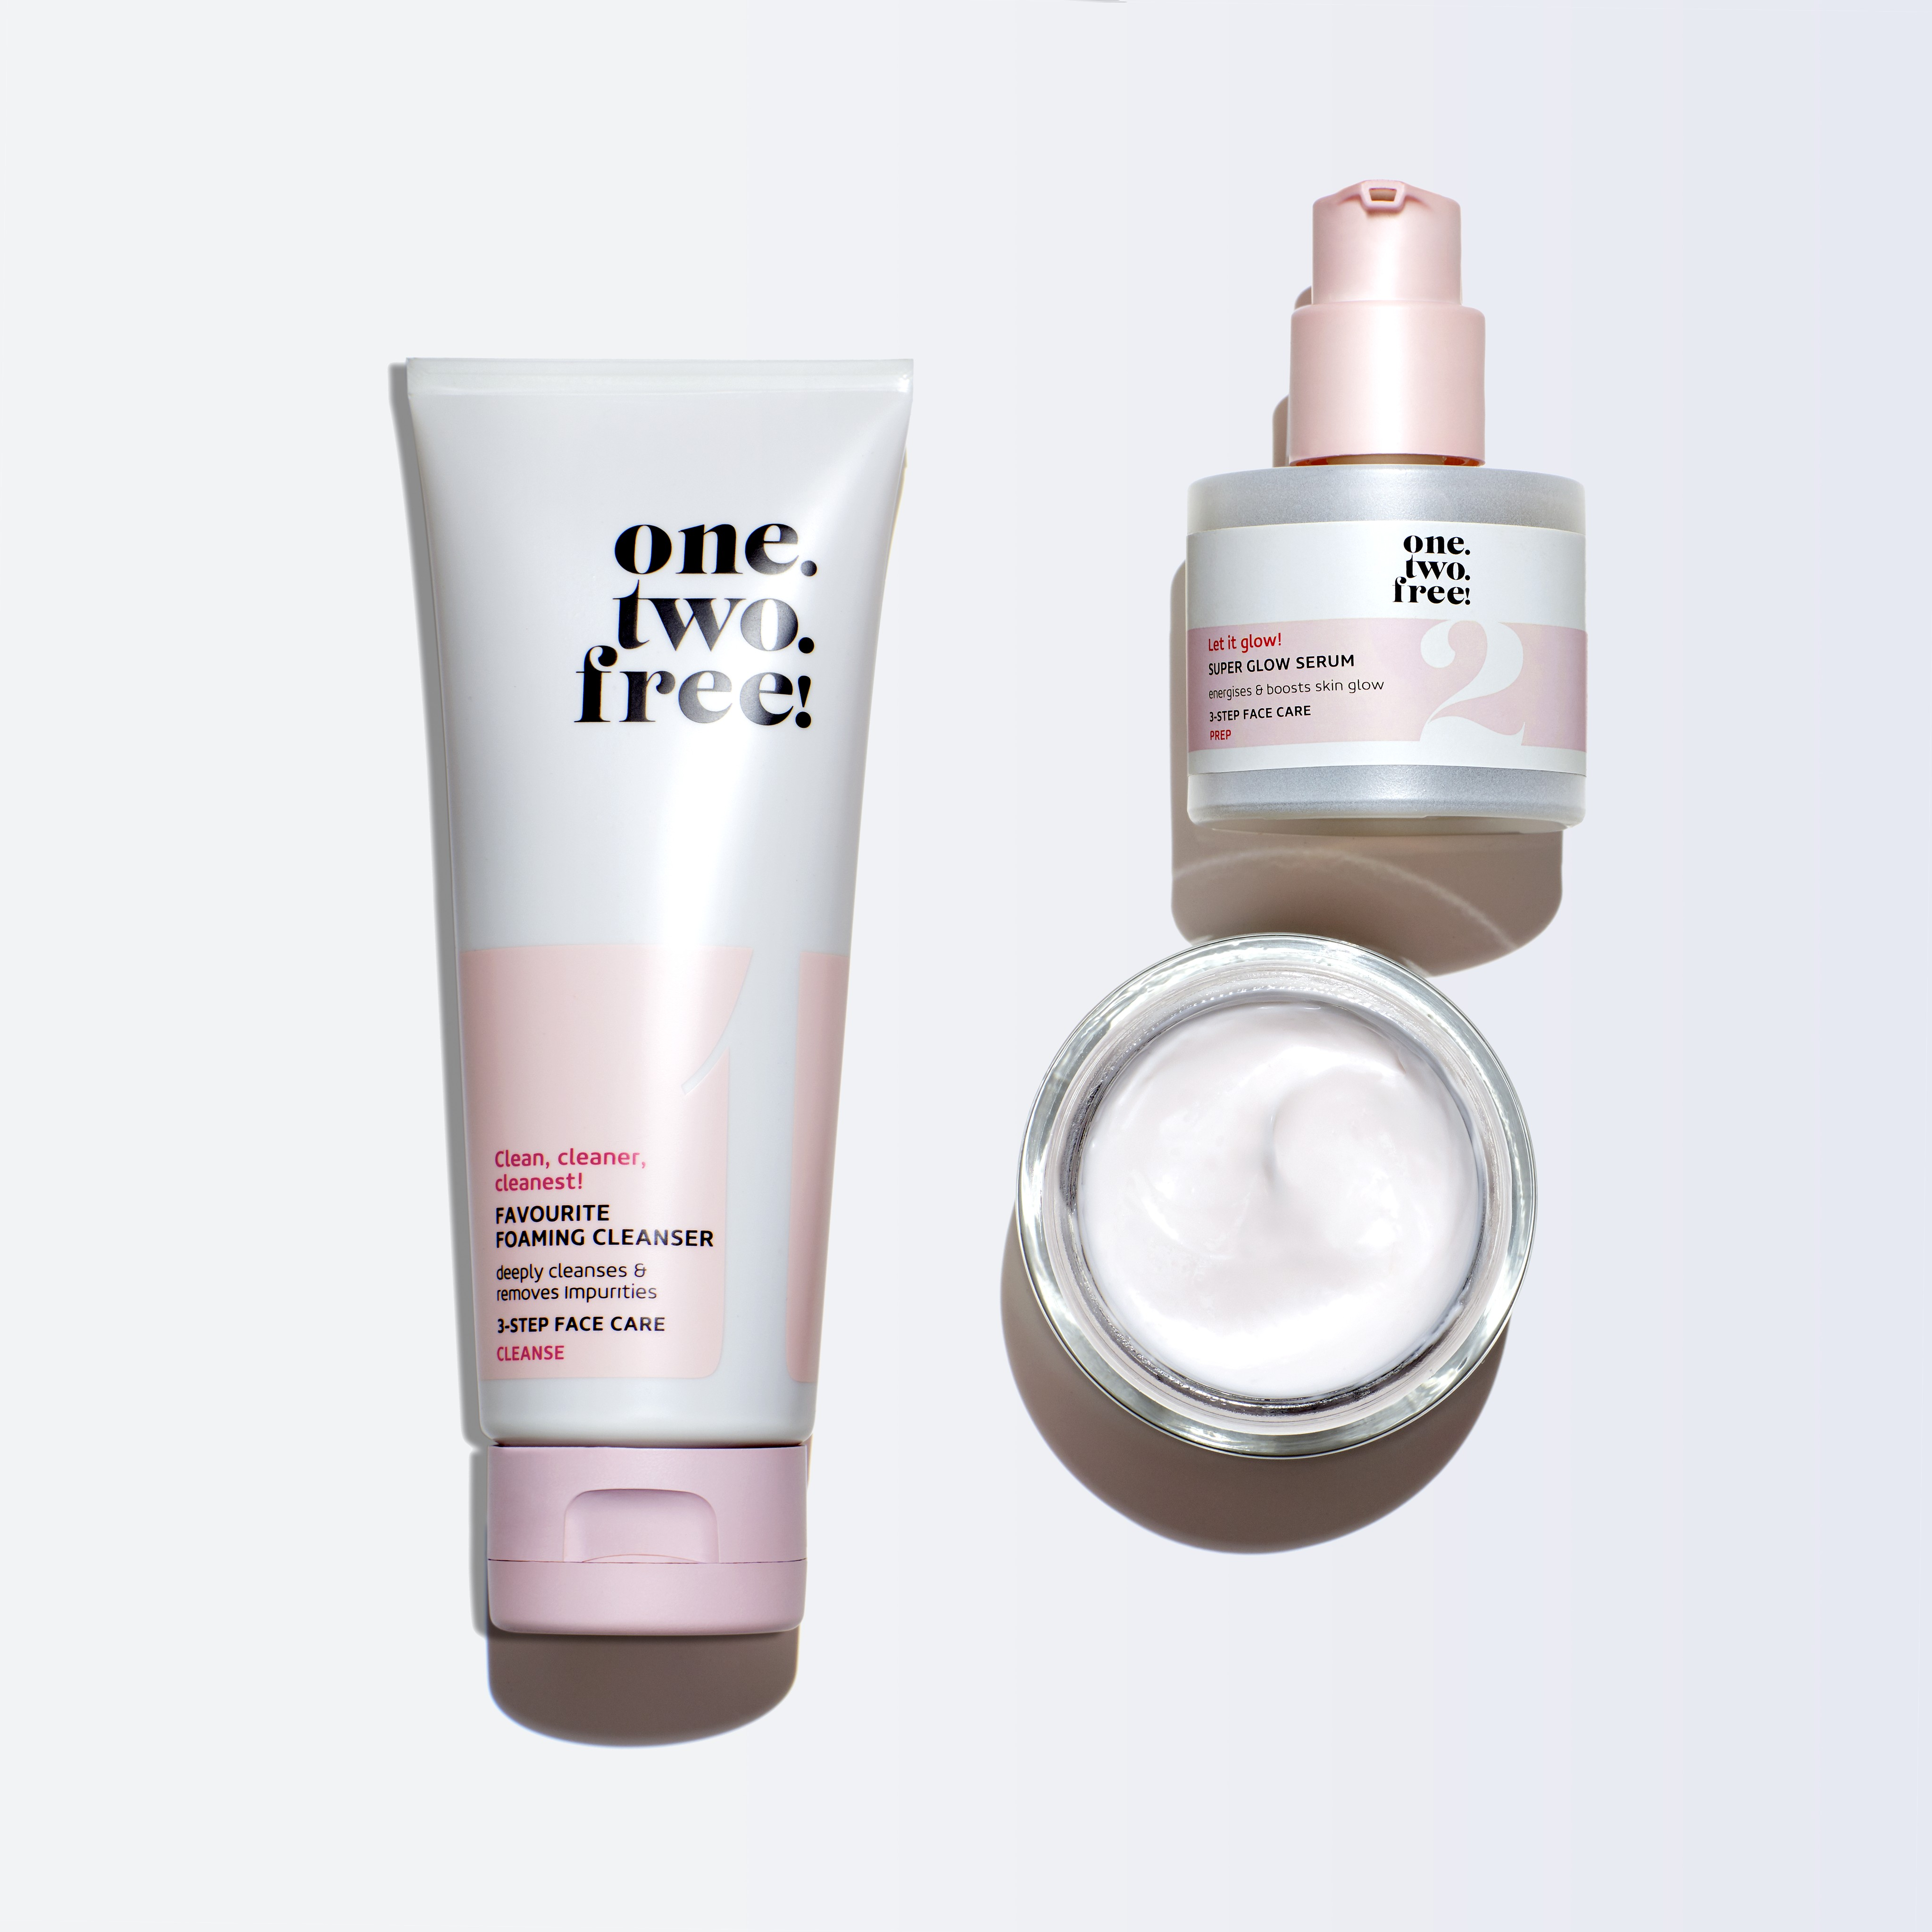 Skincare-product-nowtrending-clean-beauty-onetwofree-3steps-unlimited-Web-Rendition